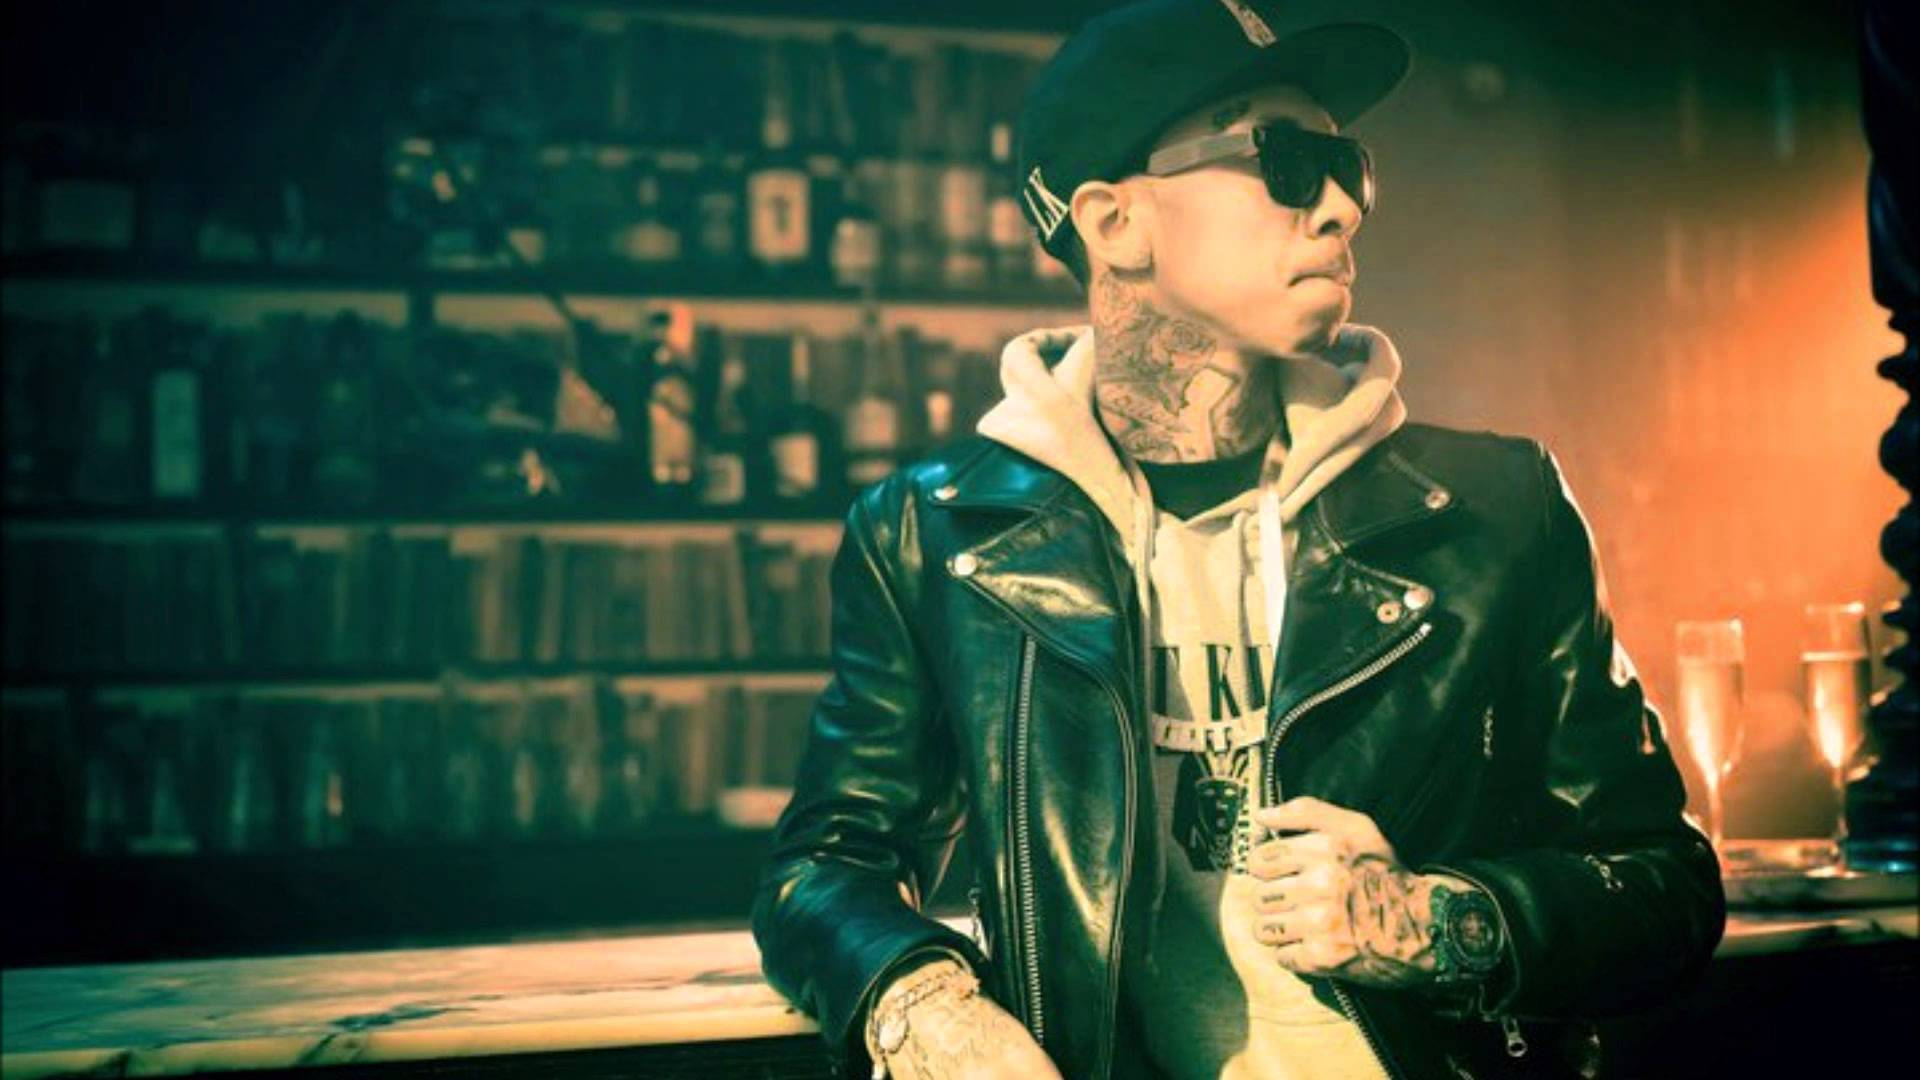 tyga wallpaper HD